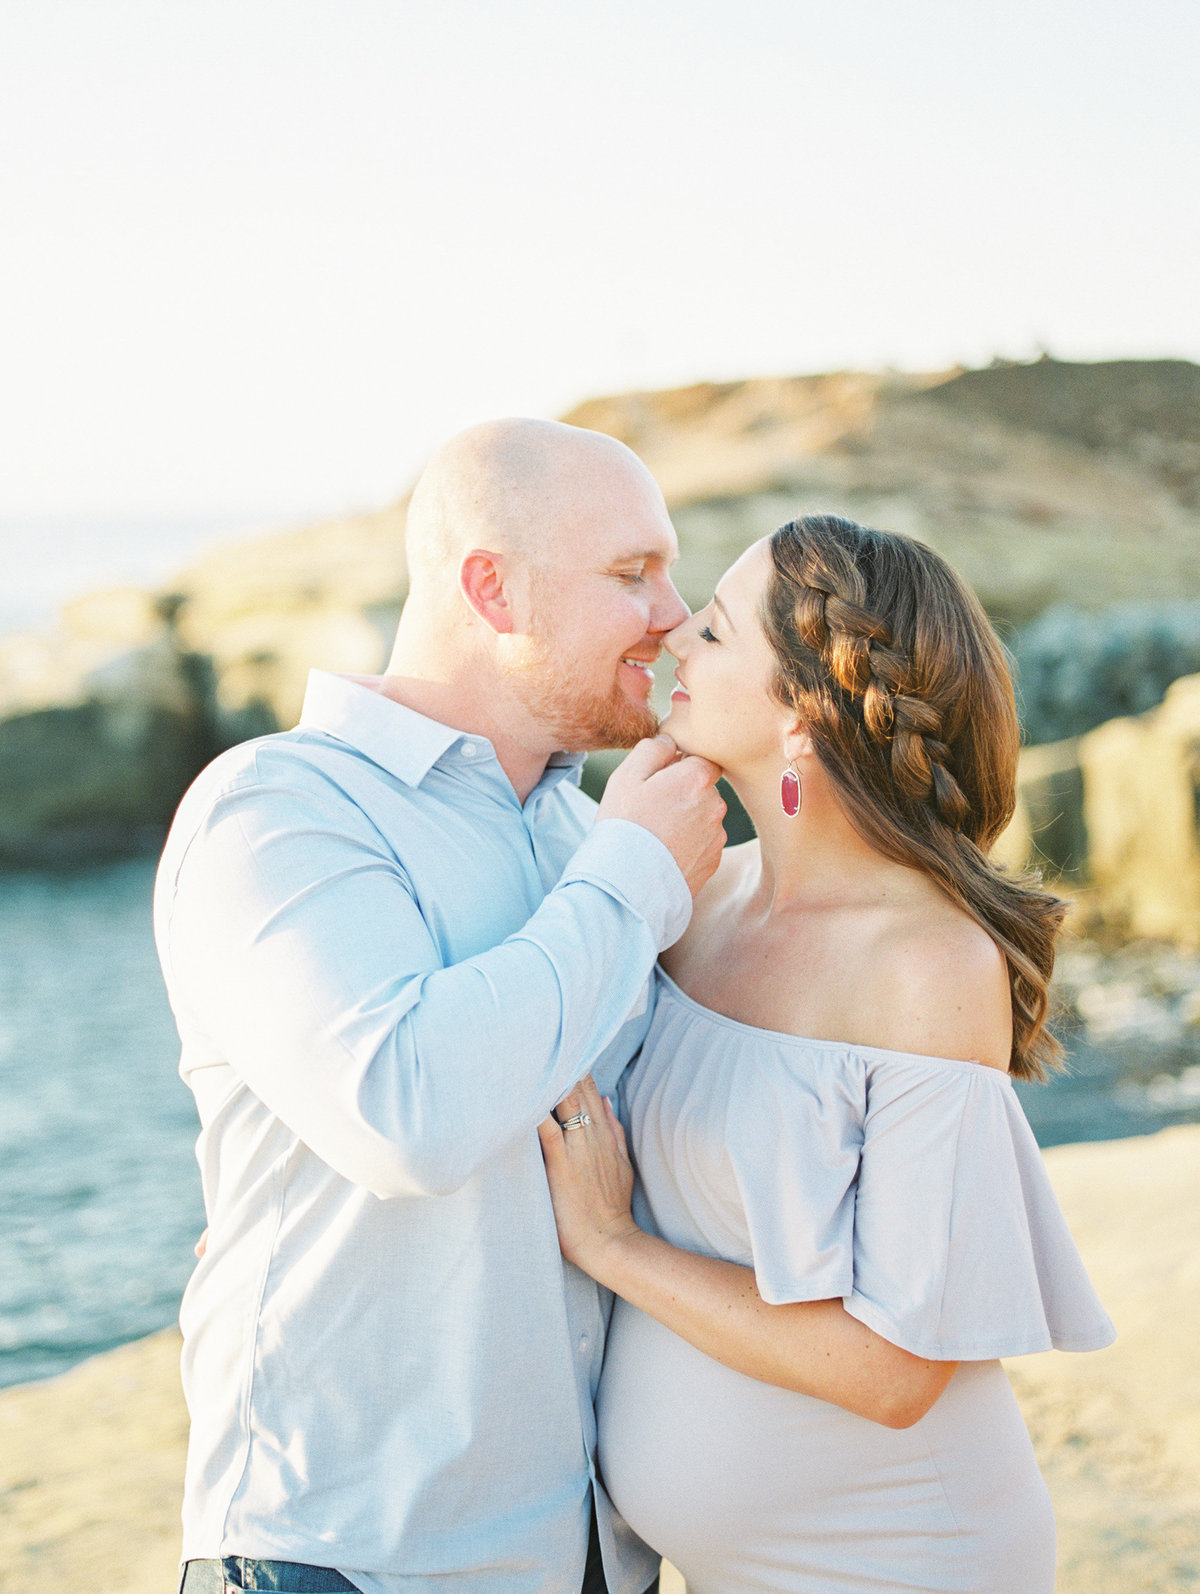 San-Diego-Maternity-Photos-15